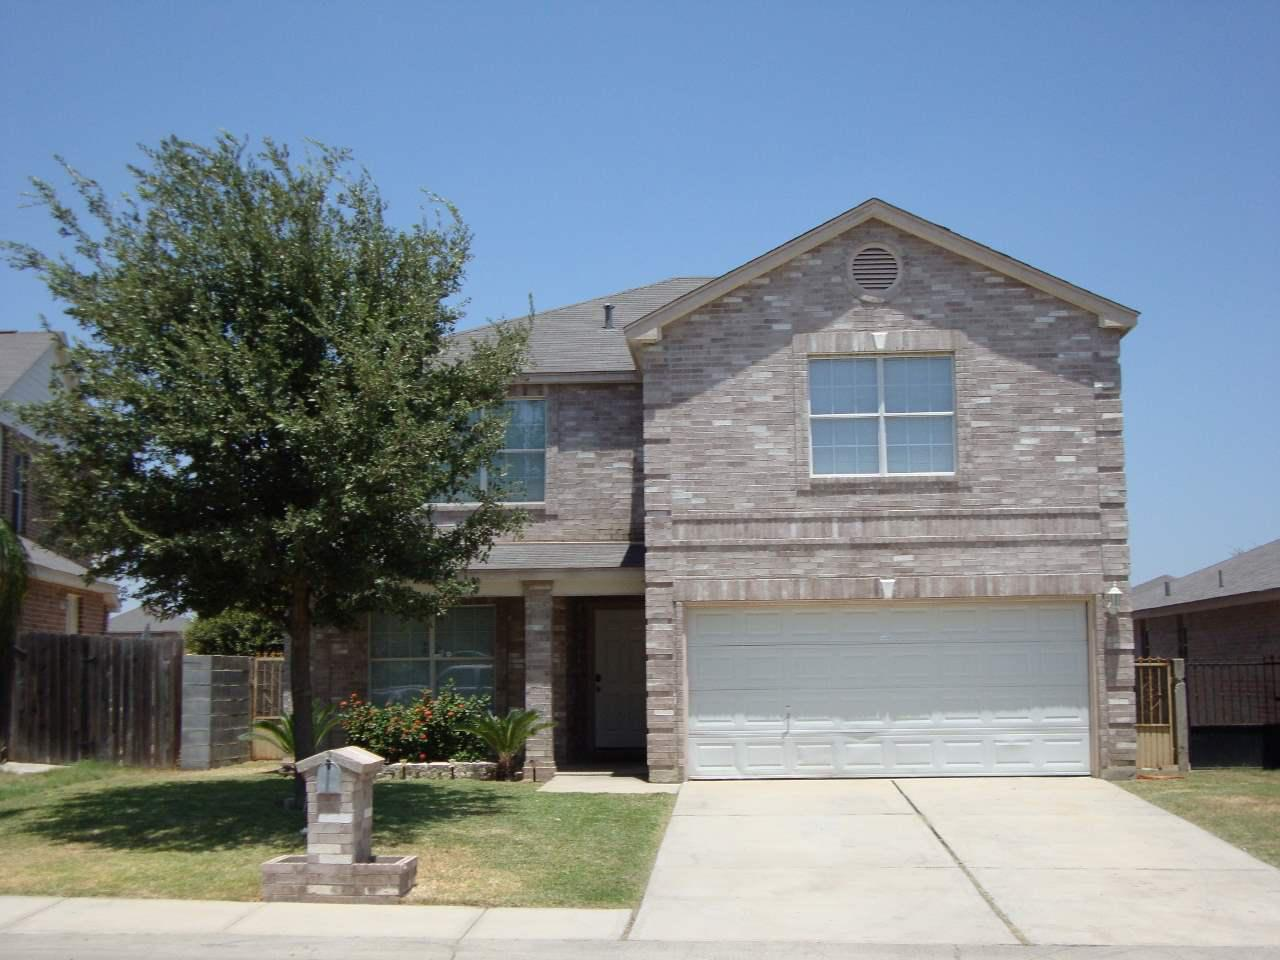 Listing 2432 old spanish trl laredo tx mls 20152372 Home builders in laredo tx